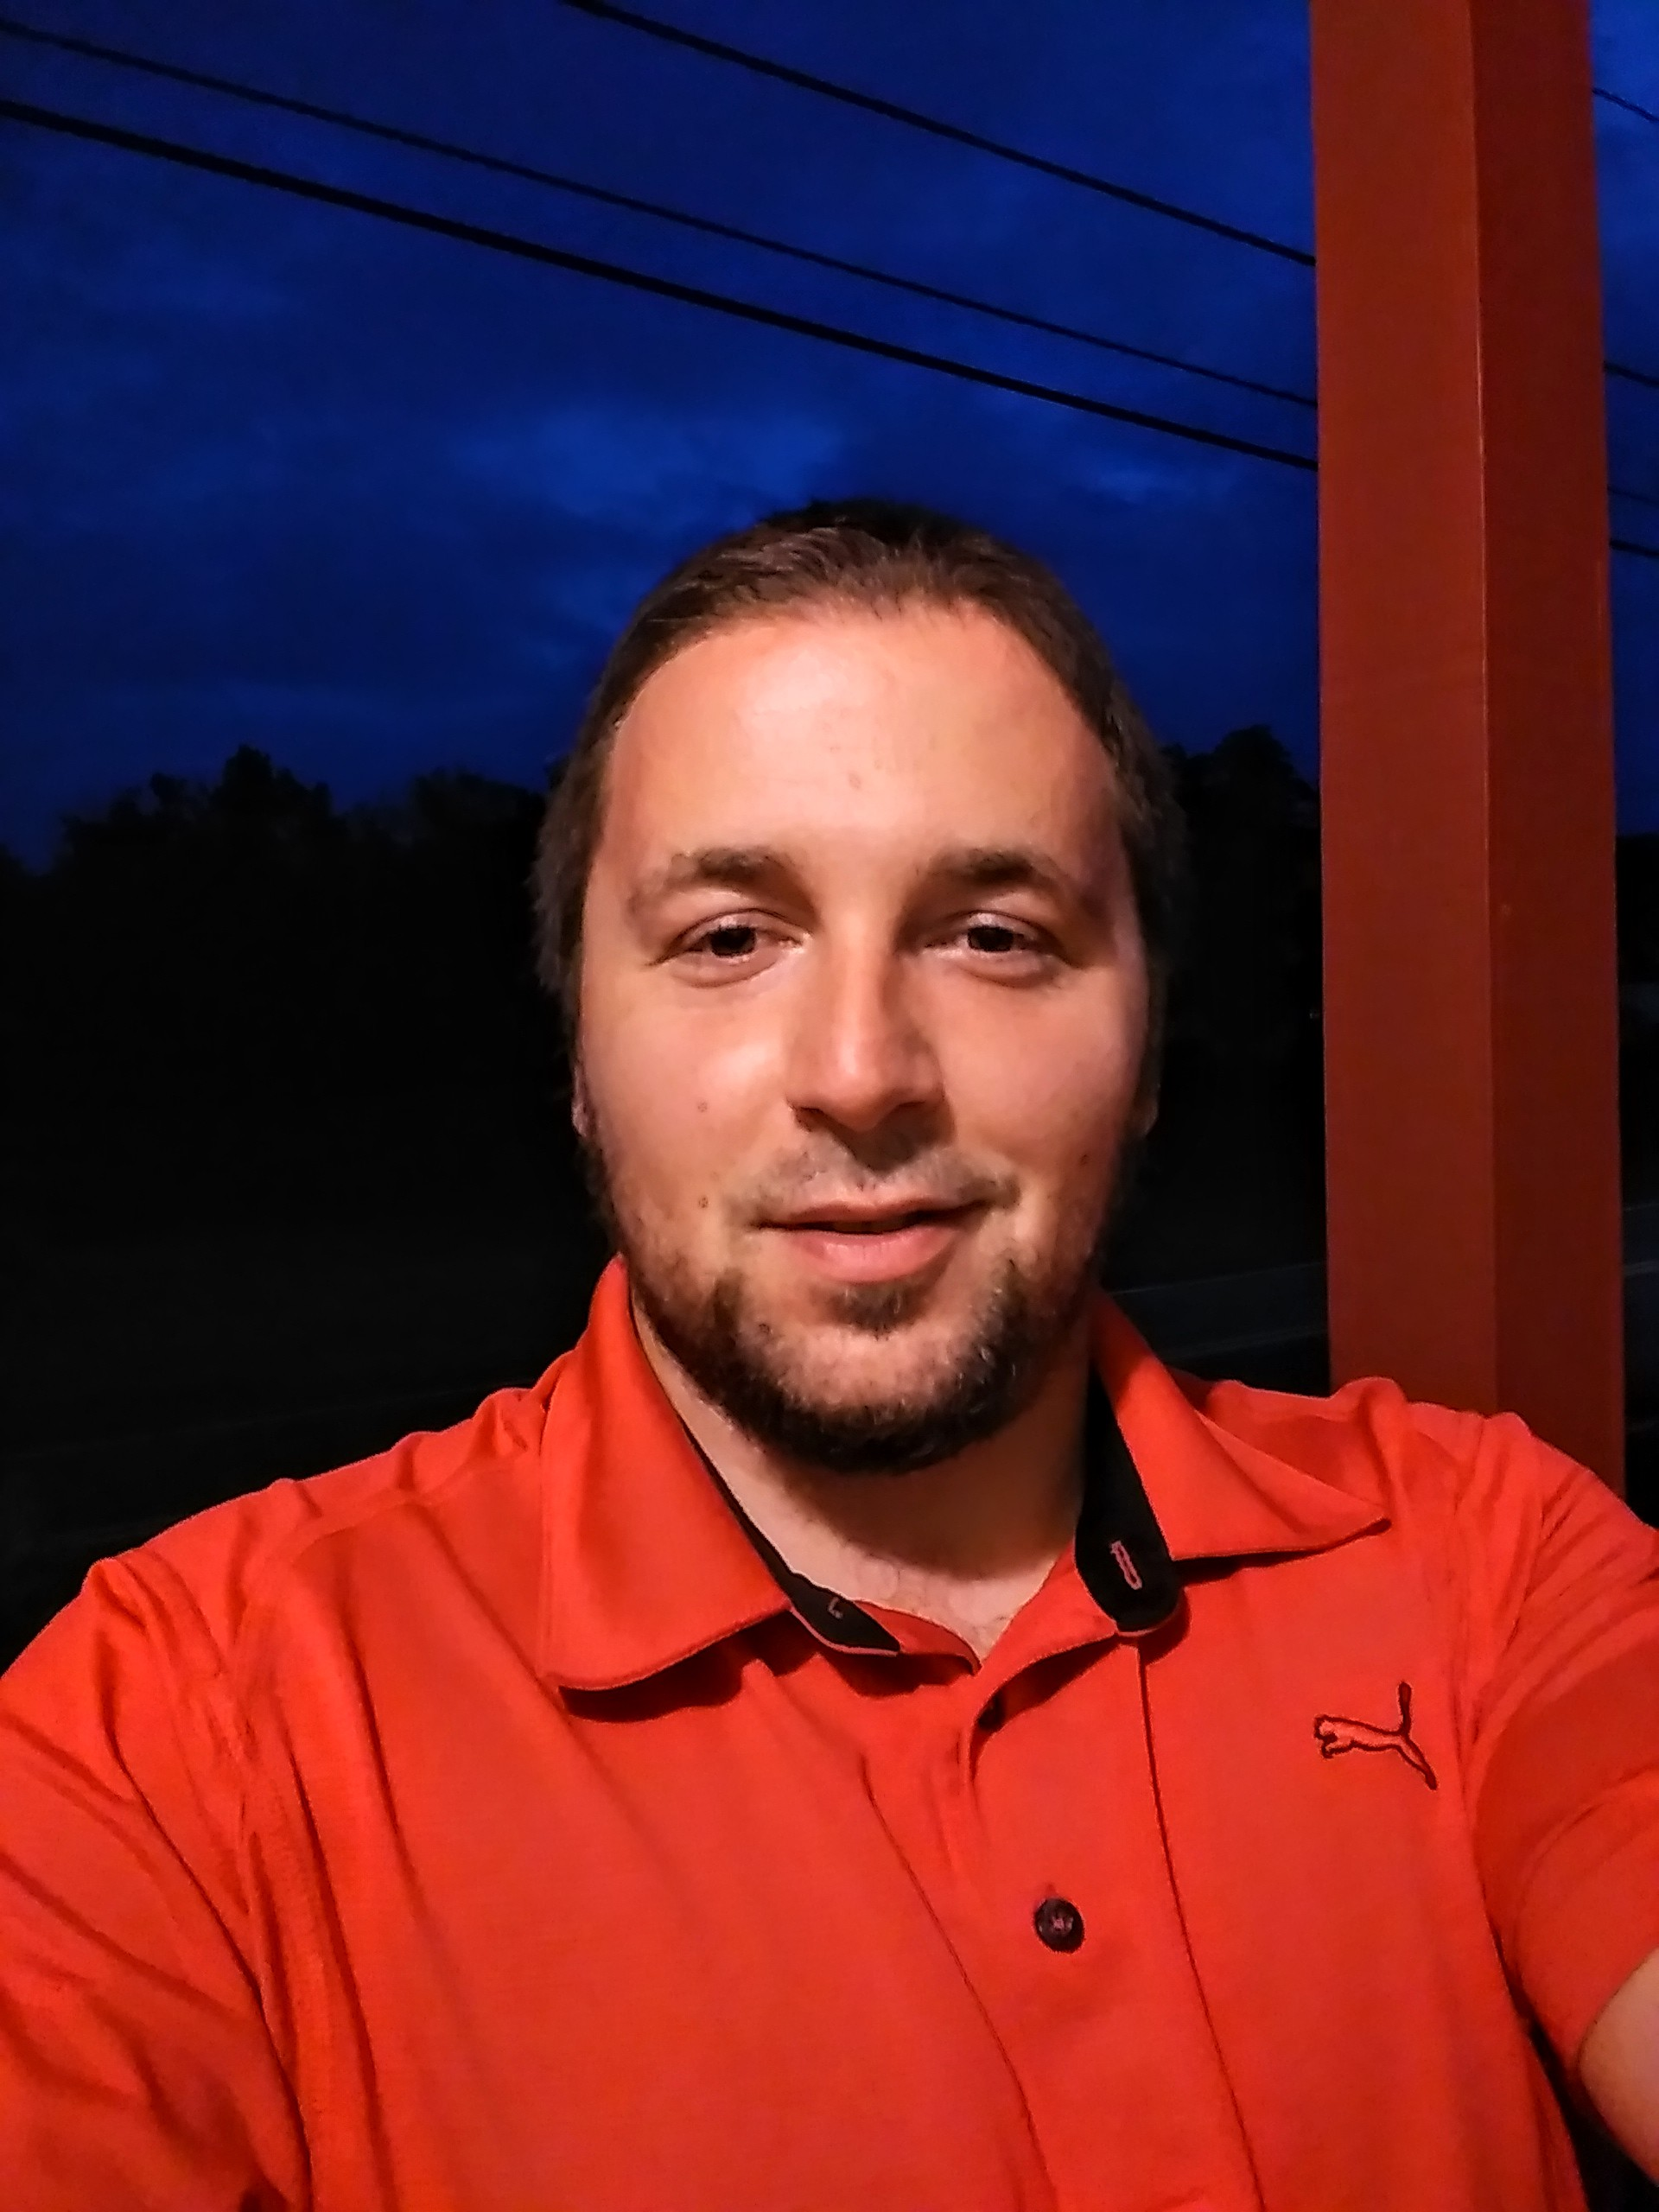 Man with beard and red shirt smiles at camera.